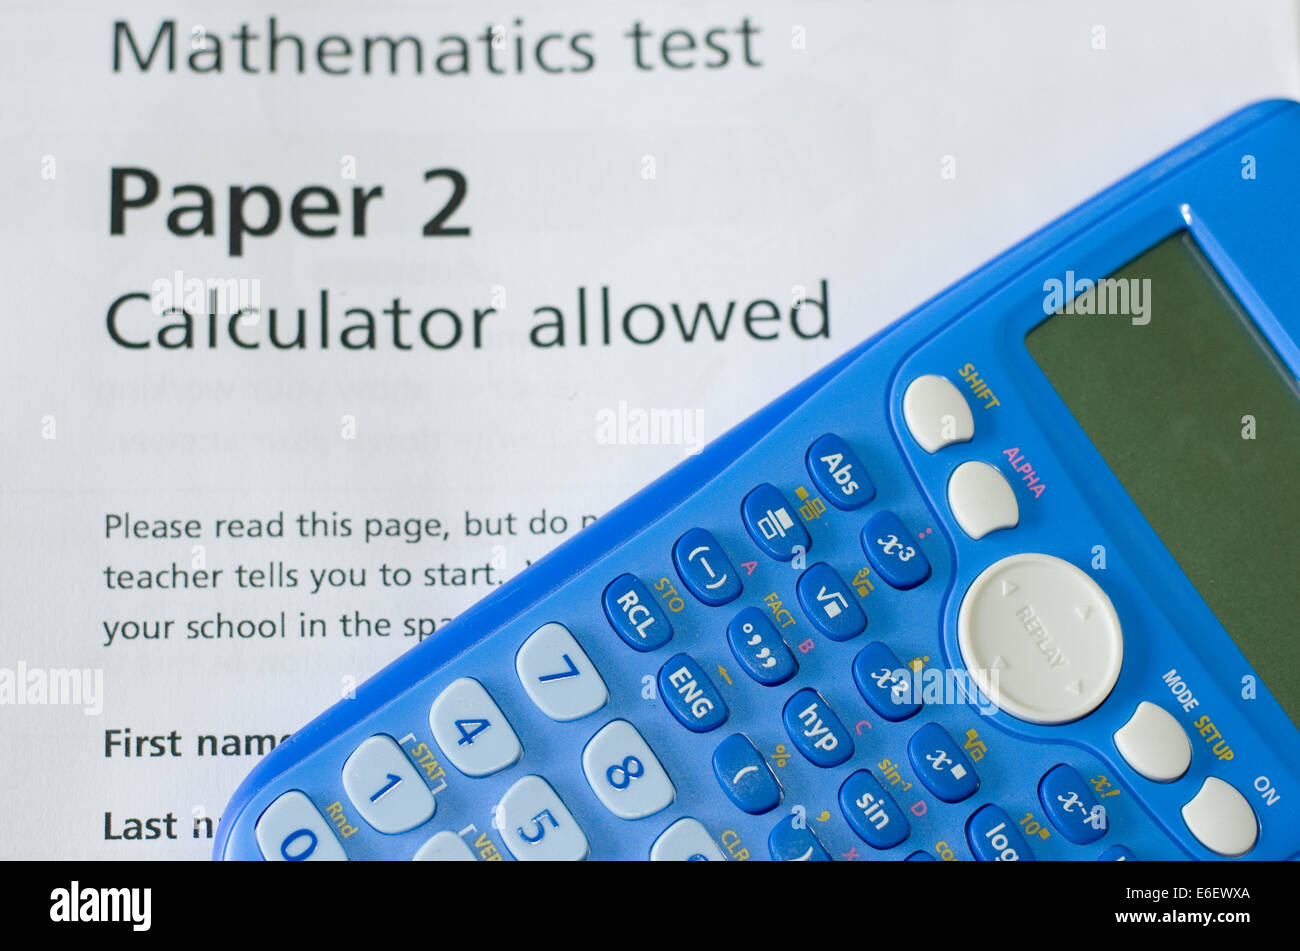 Key Stage 3 Maths Resources Free Maths KS3 Area Henbury – Free Ks3 Maths Worksheets with Answers